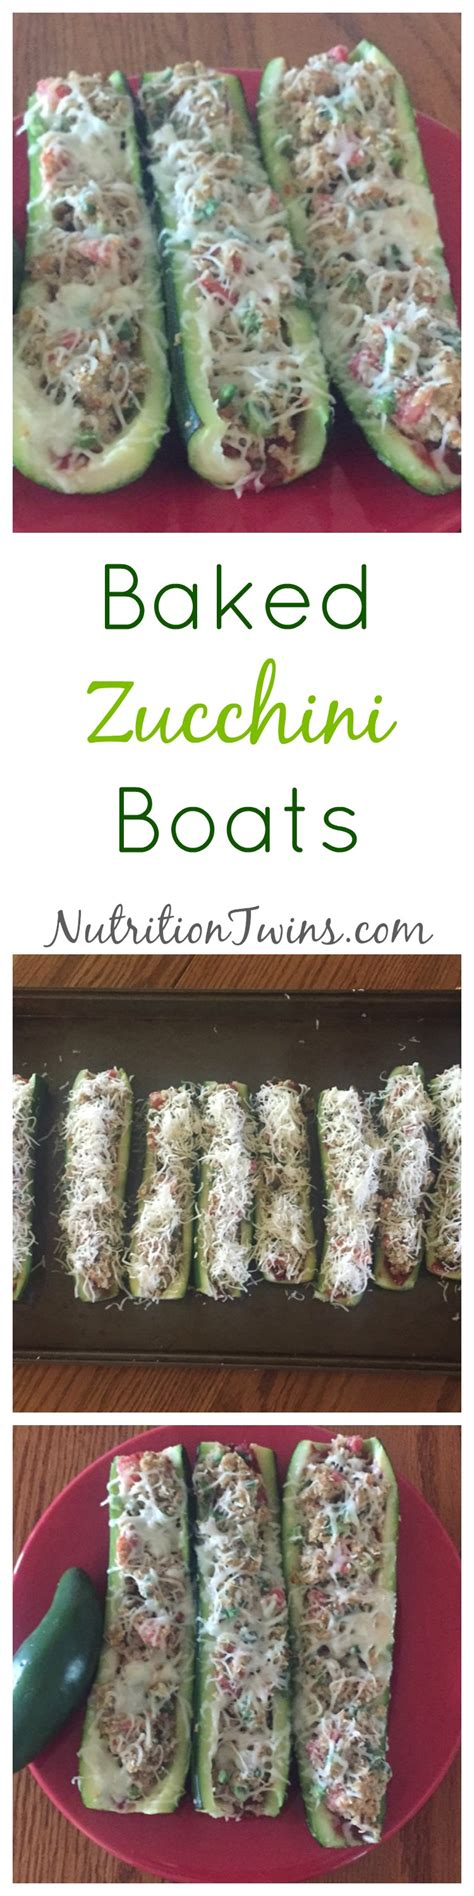 baked zucchini boat recipes baked zucchini boats nutrition twins